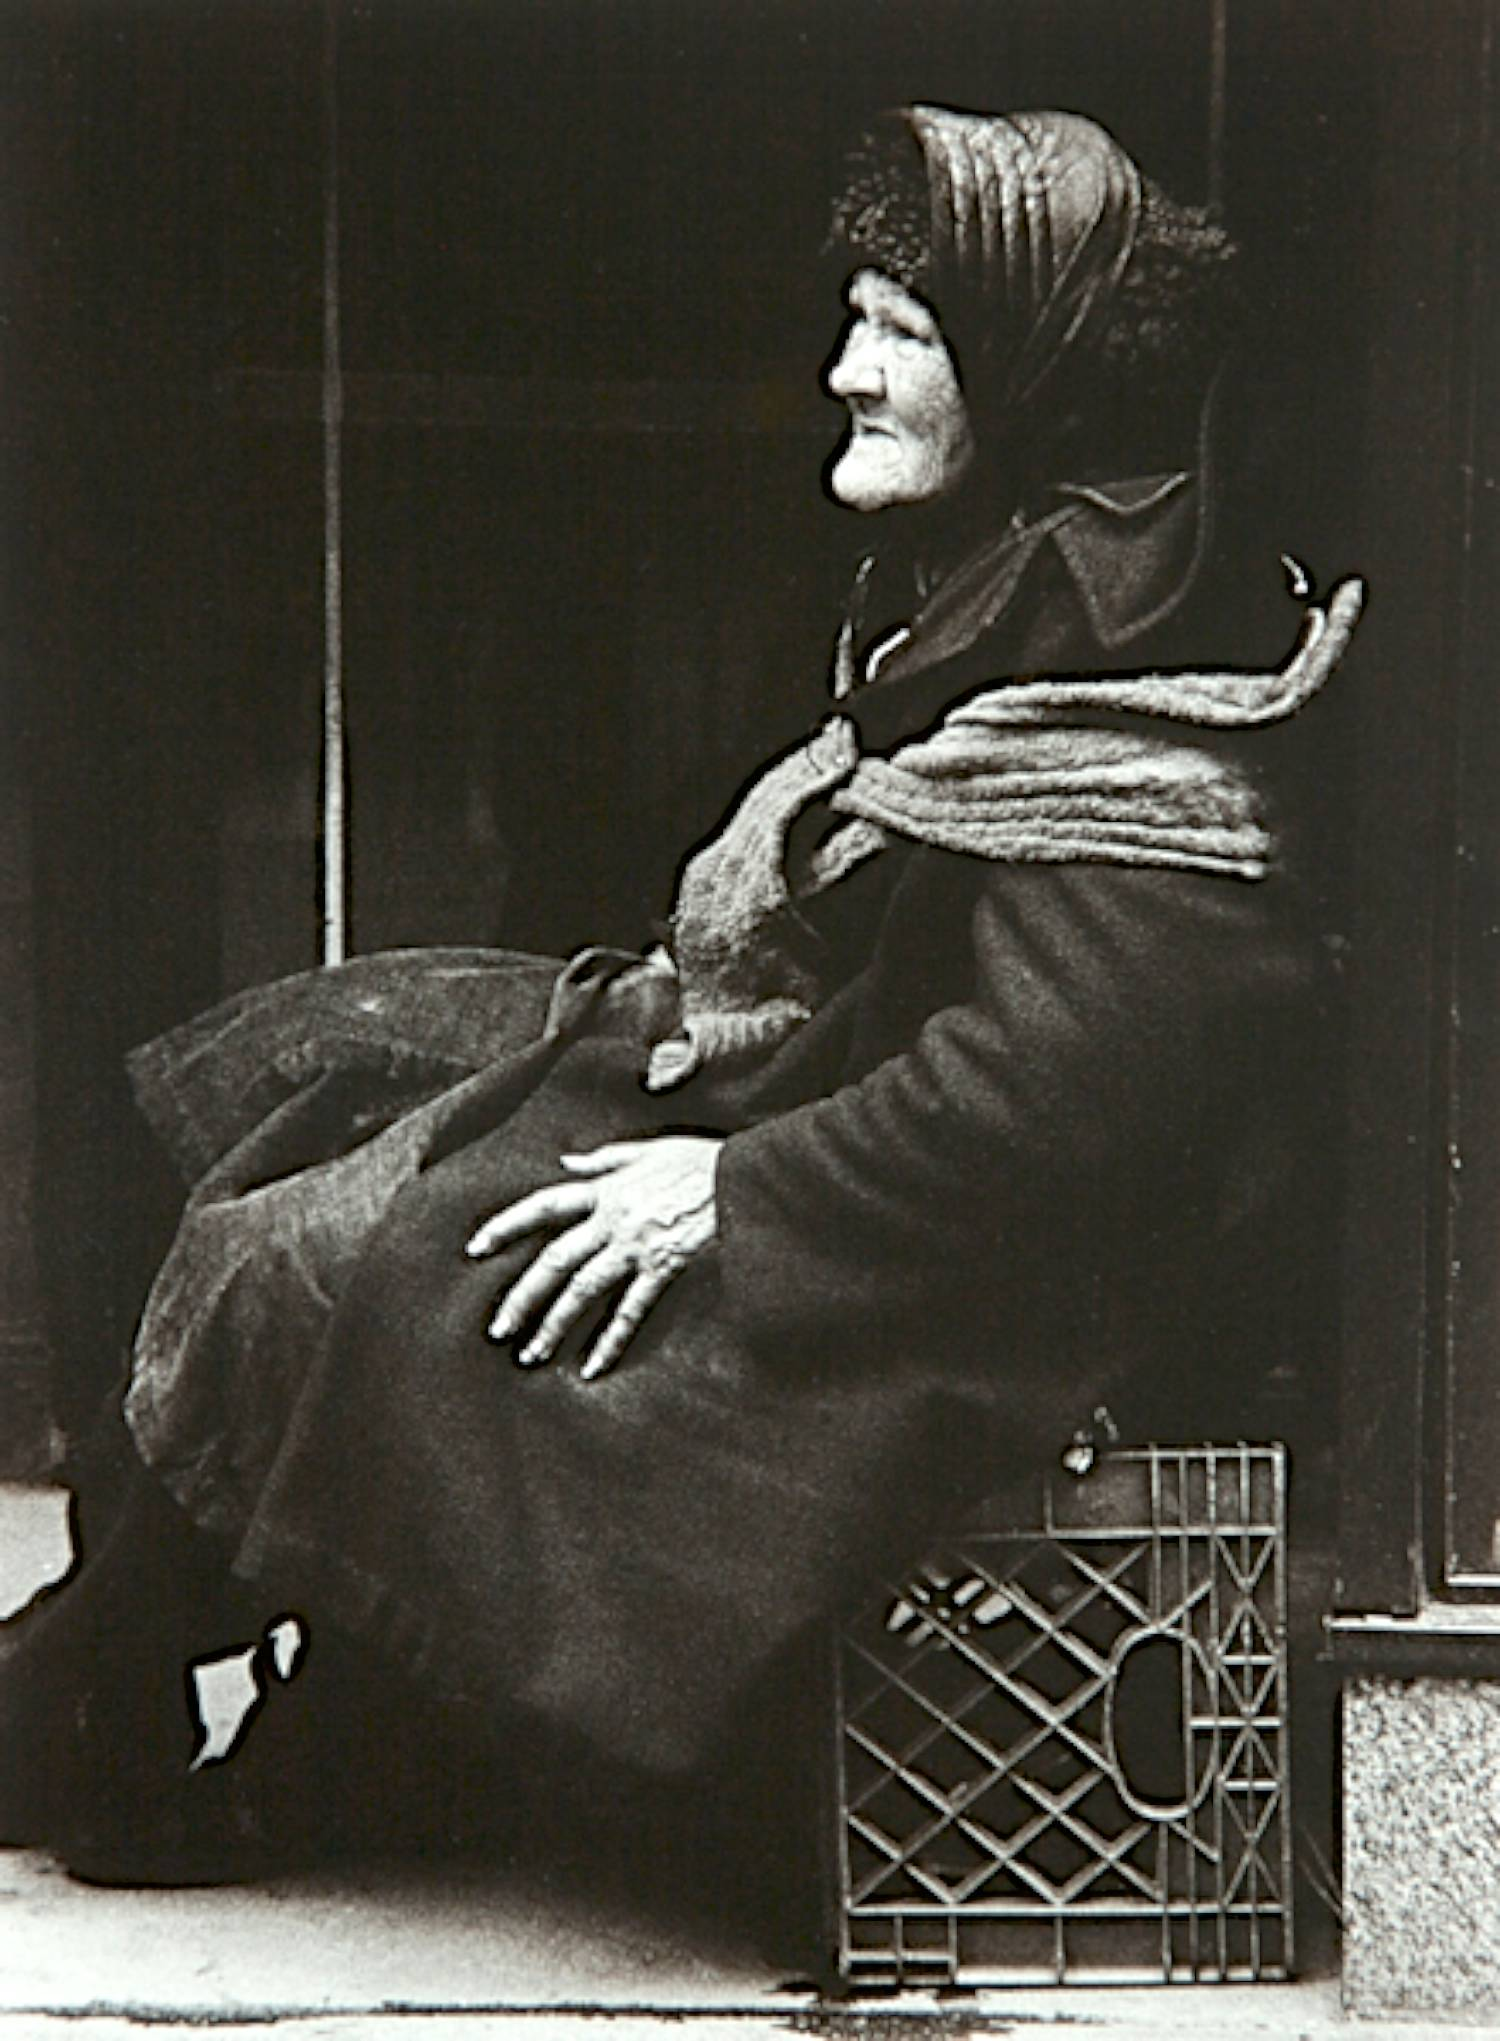 Lady of the Street (New York City)